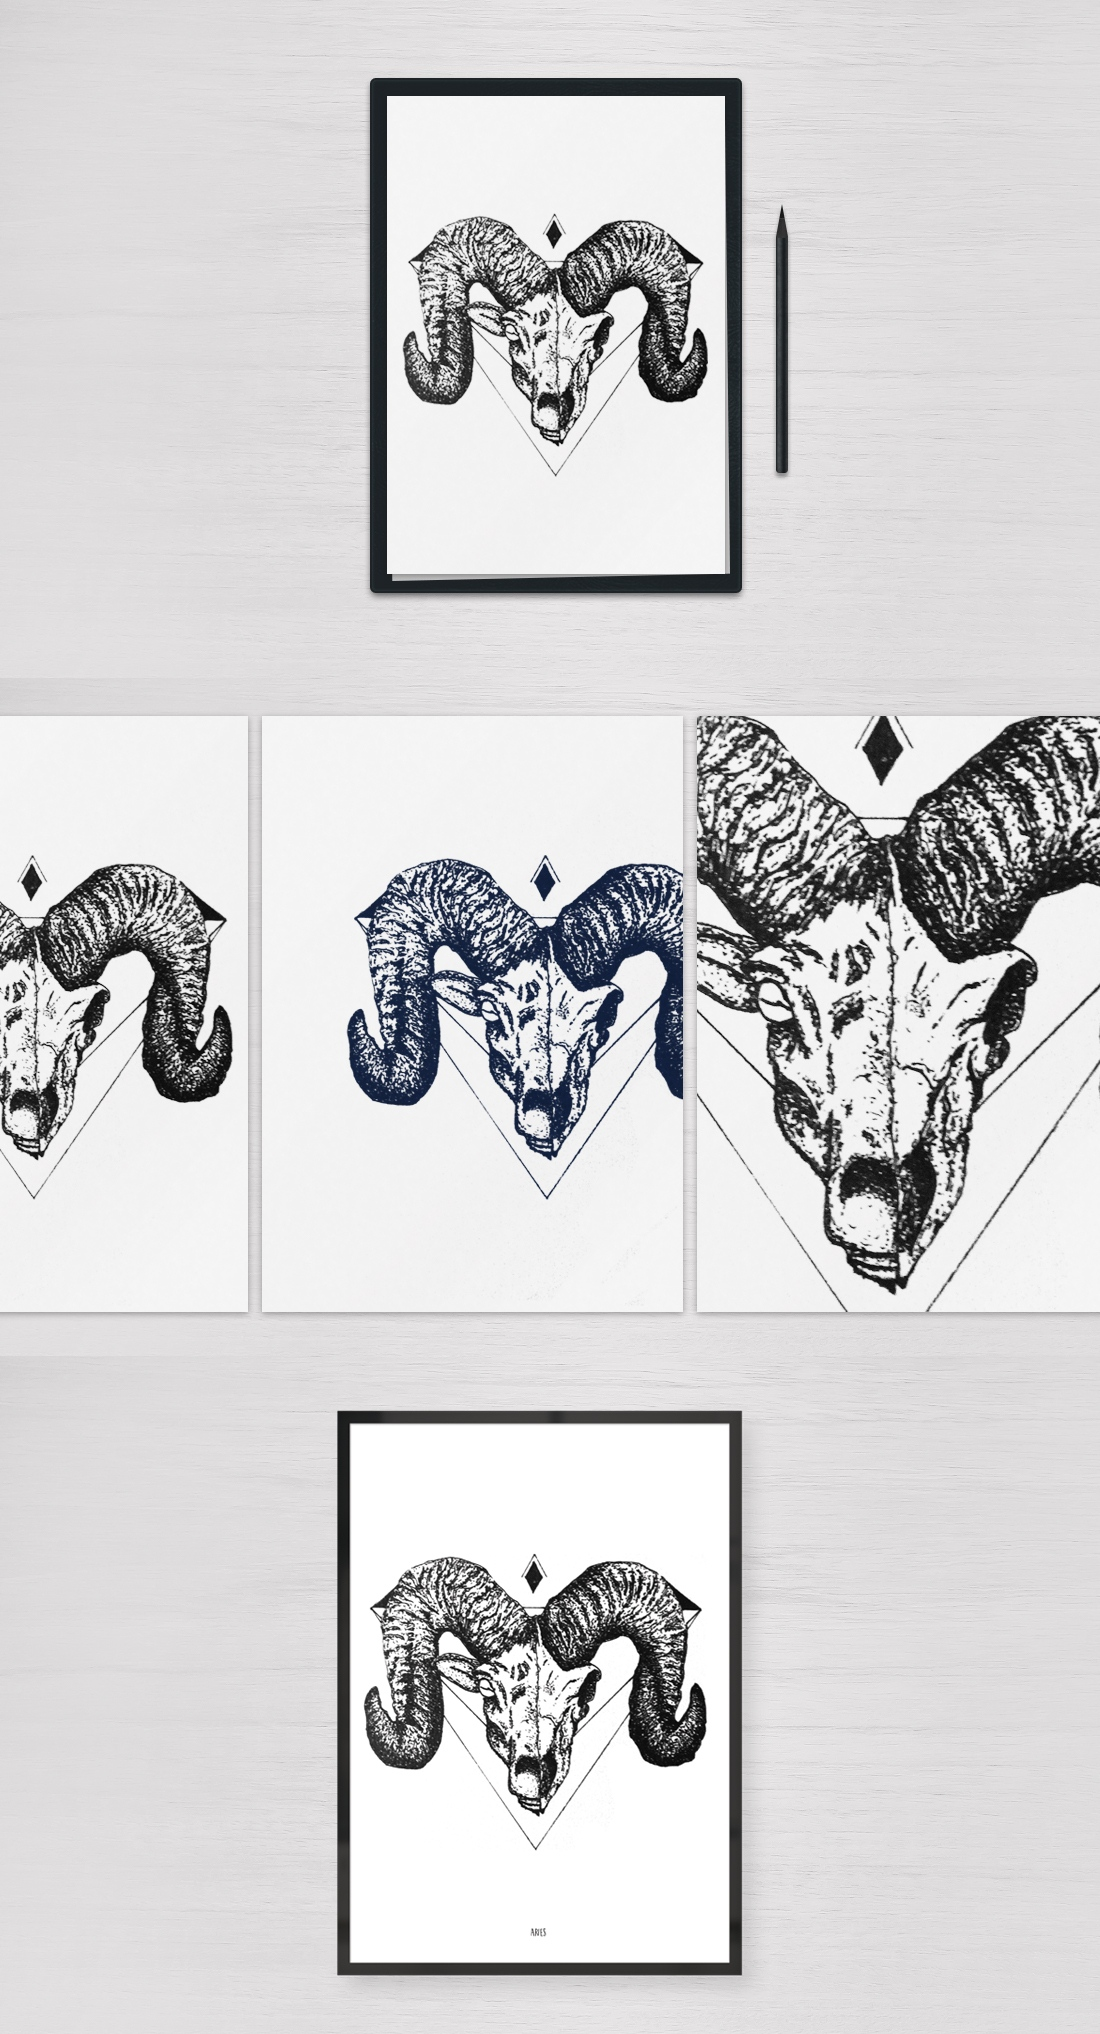 Aries Pointilism illustration, black and white